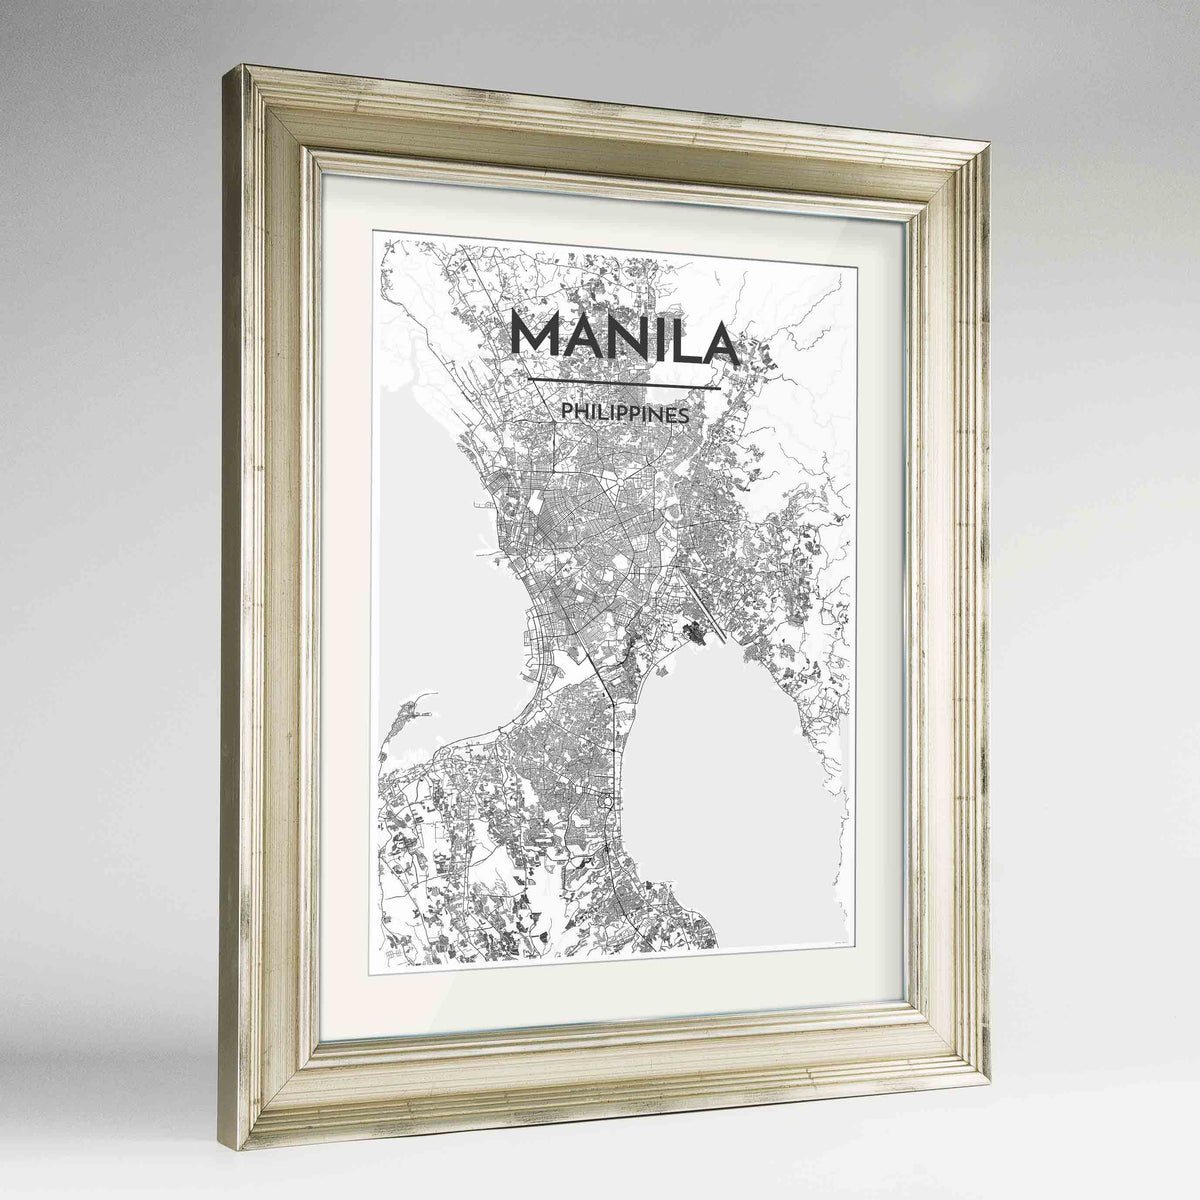 "Framed Manila Map Art Print 24x36"" Champagne frame Point Two Design Group"